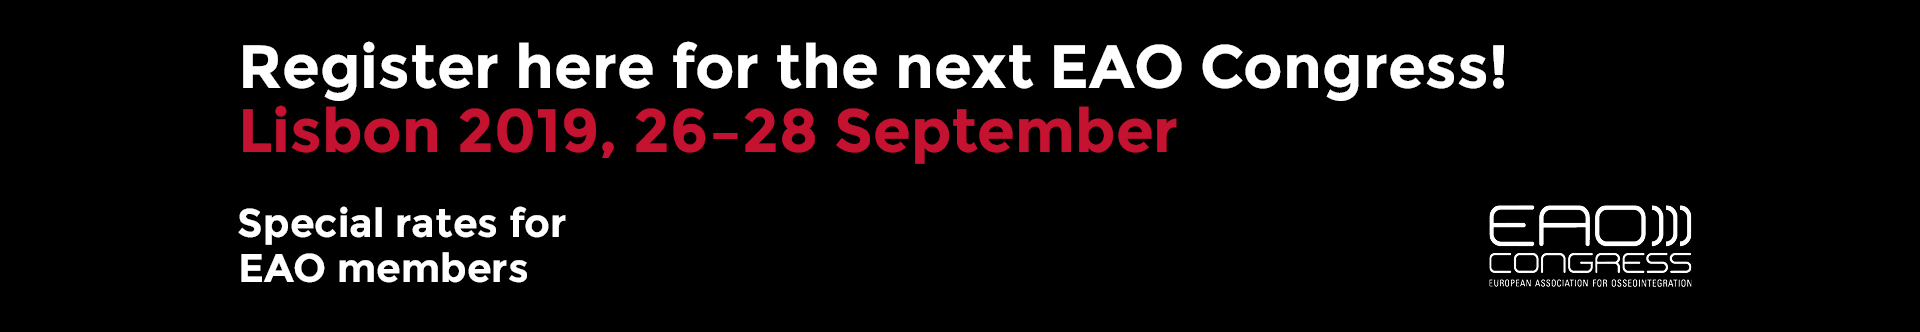 Register here for the next EAO Congress! Lisbon 2019, 26-28 September. Special rates for EAO members.